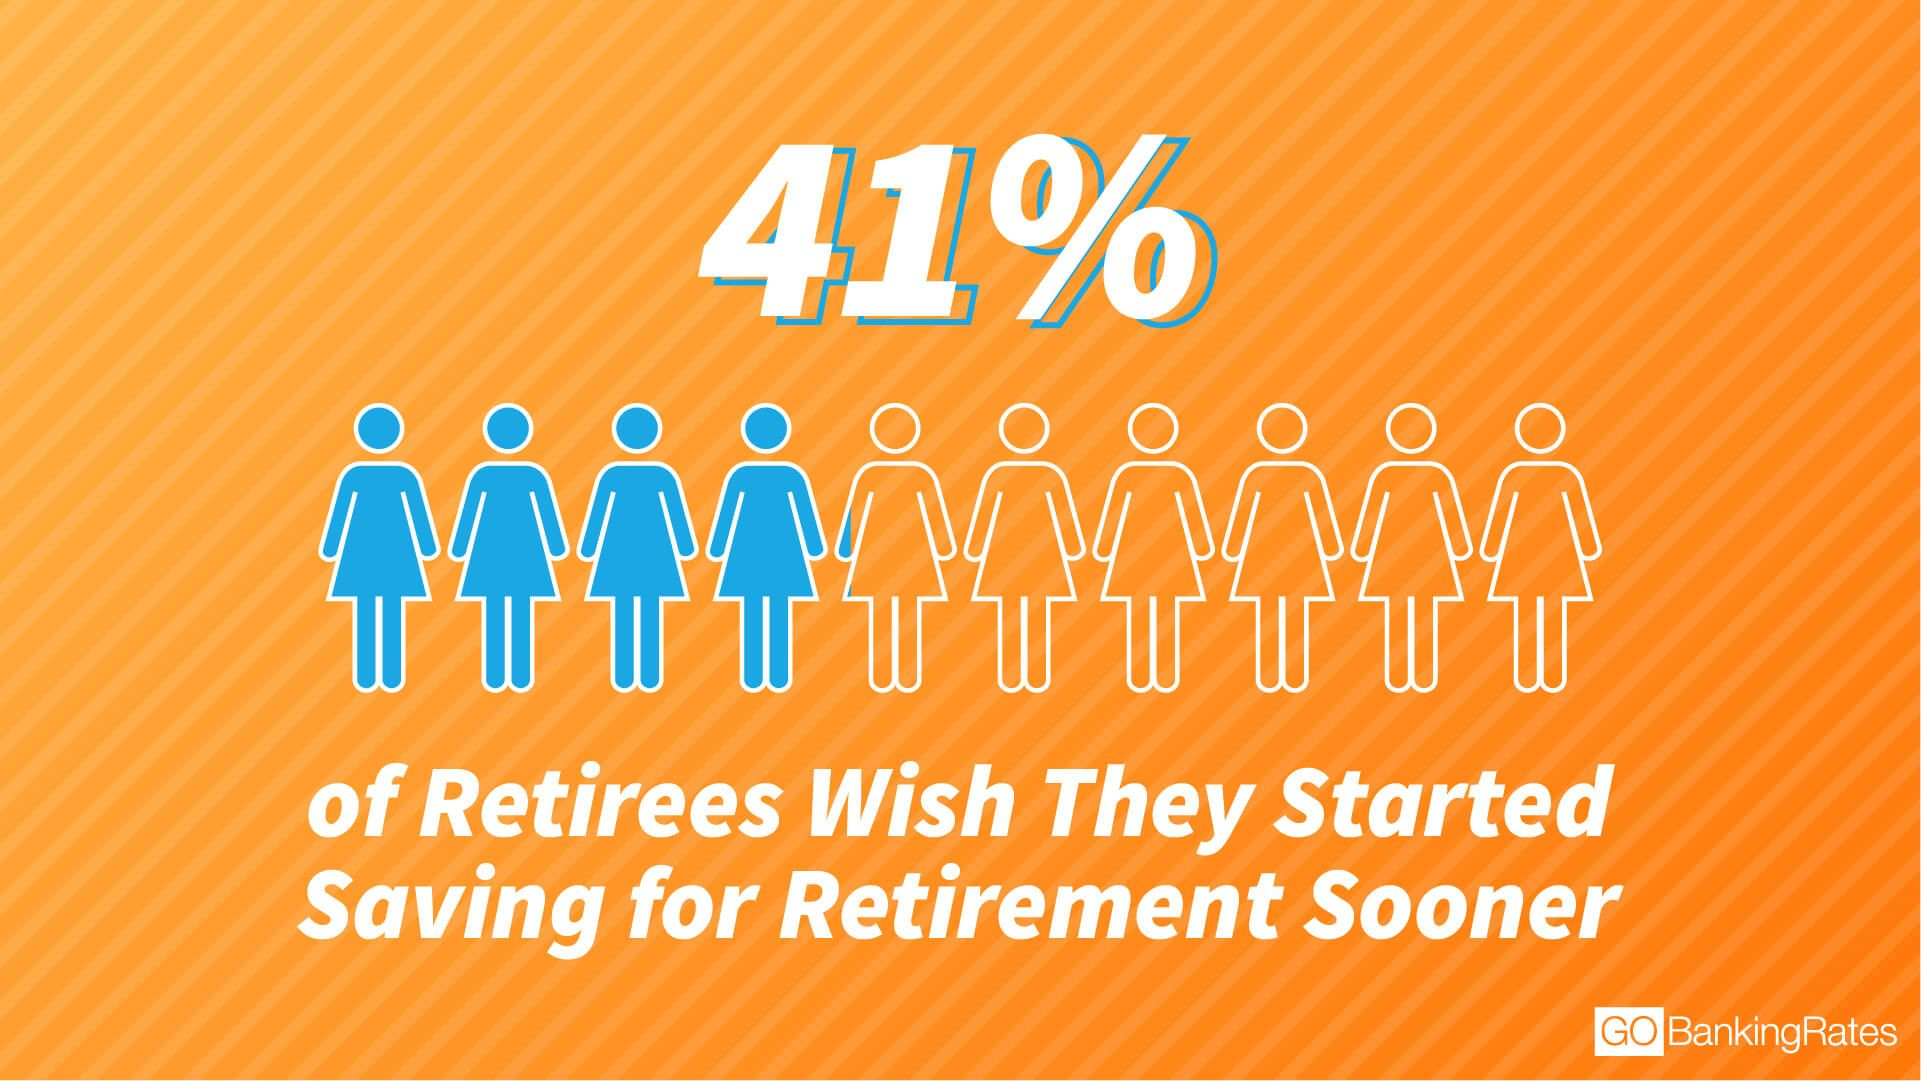 41% of retirees wish they had started saving sooner